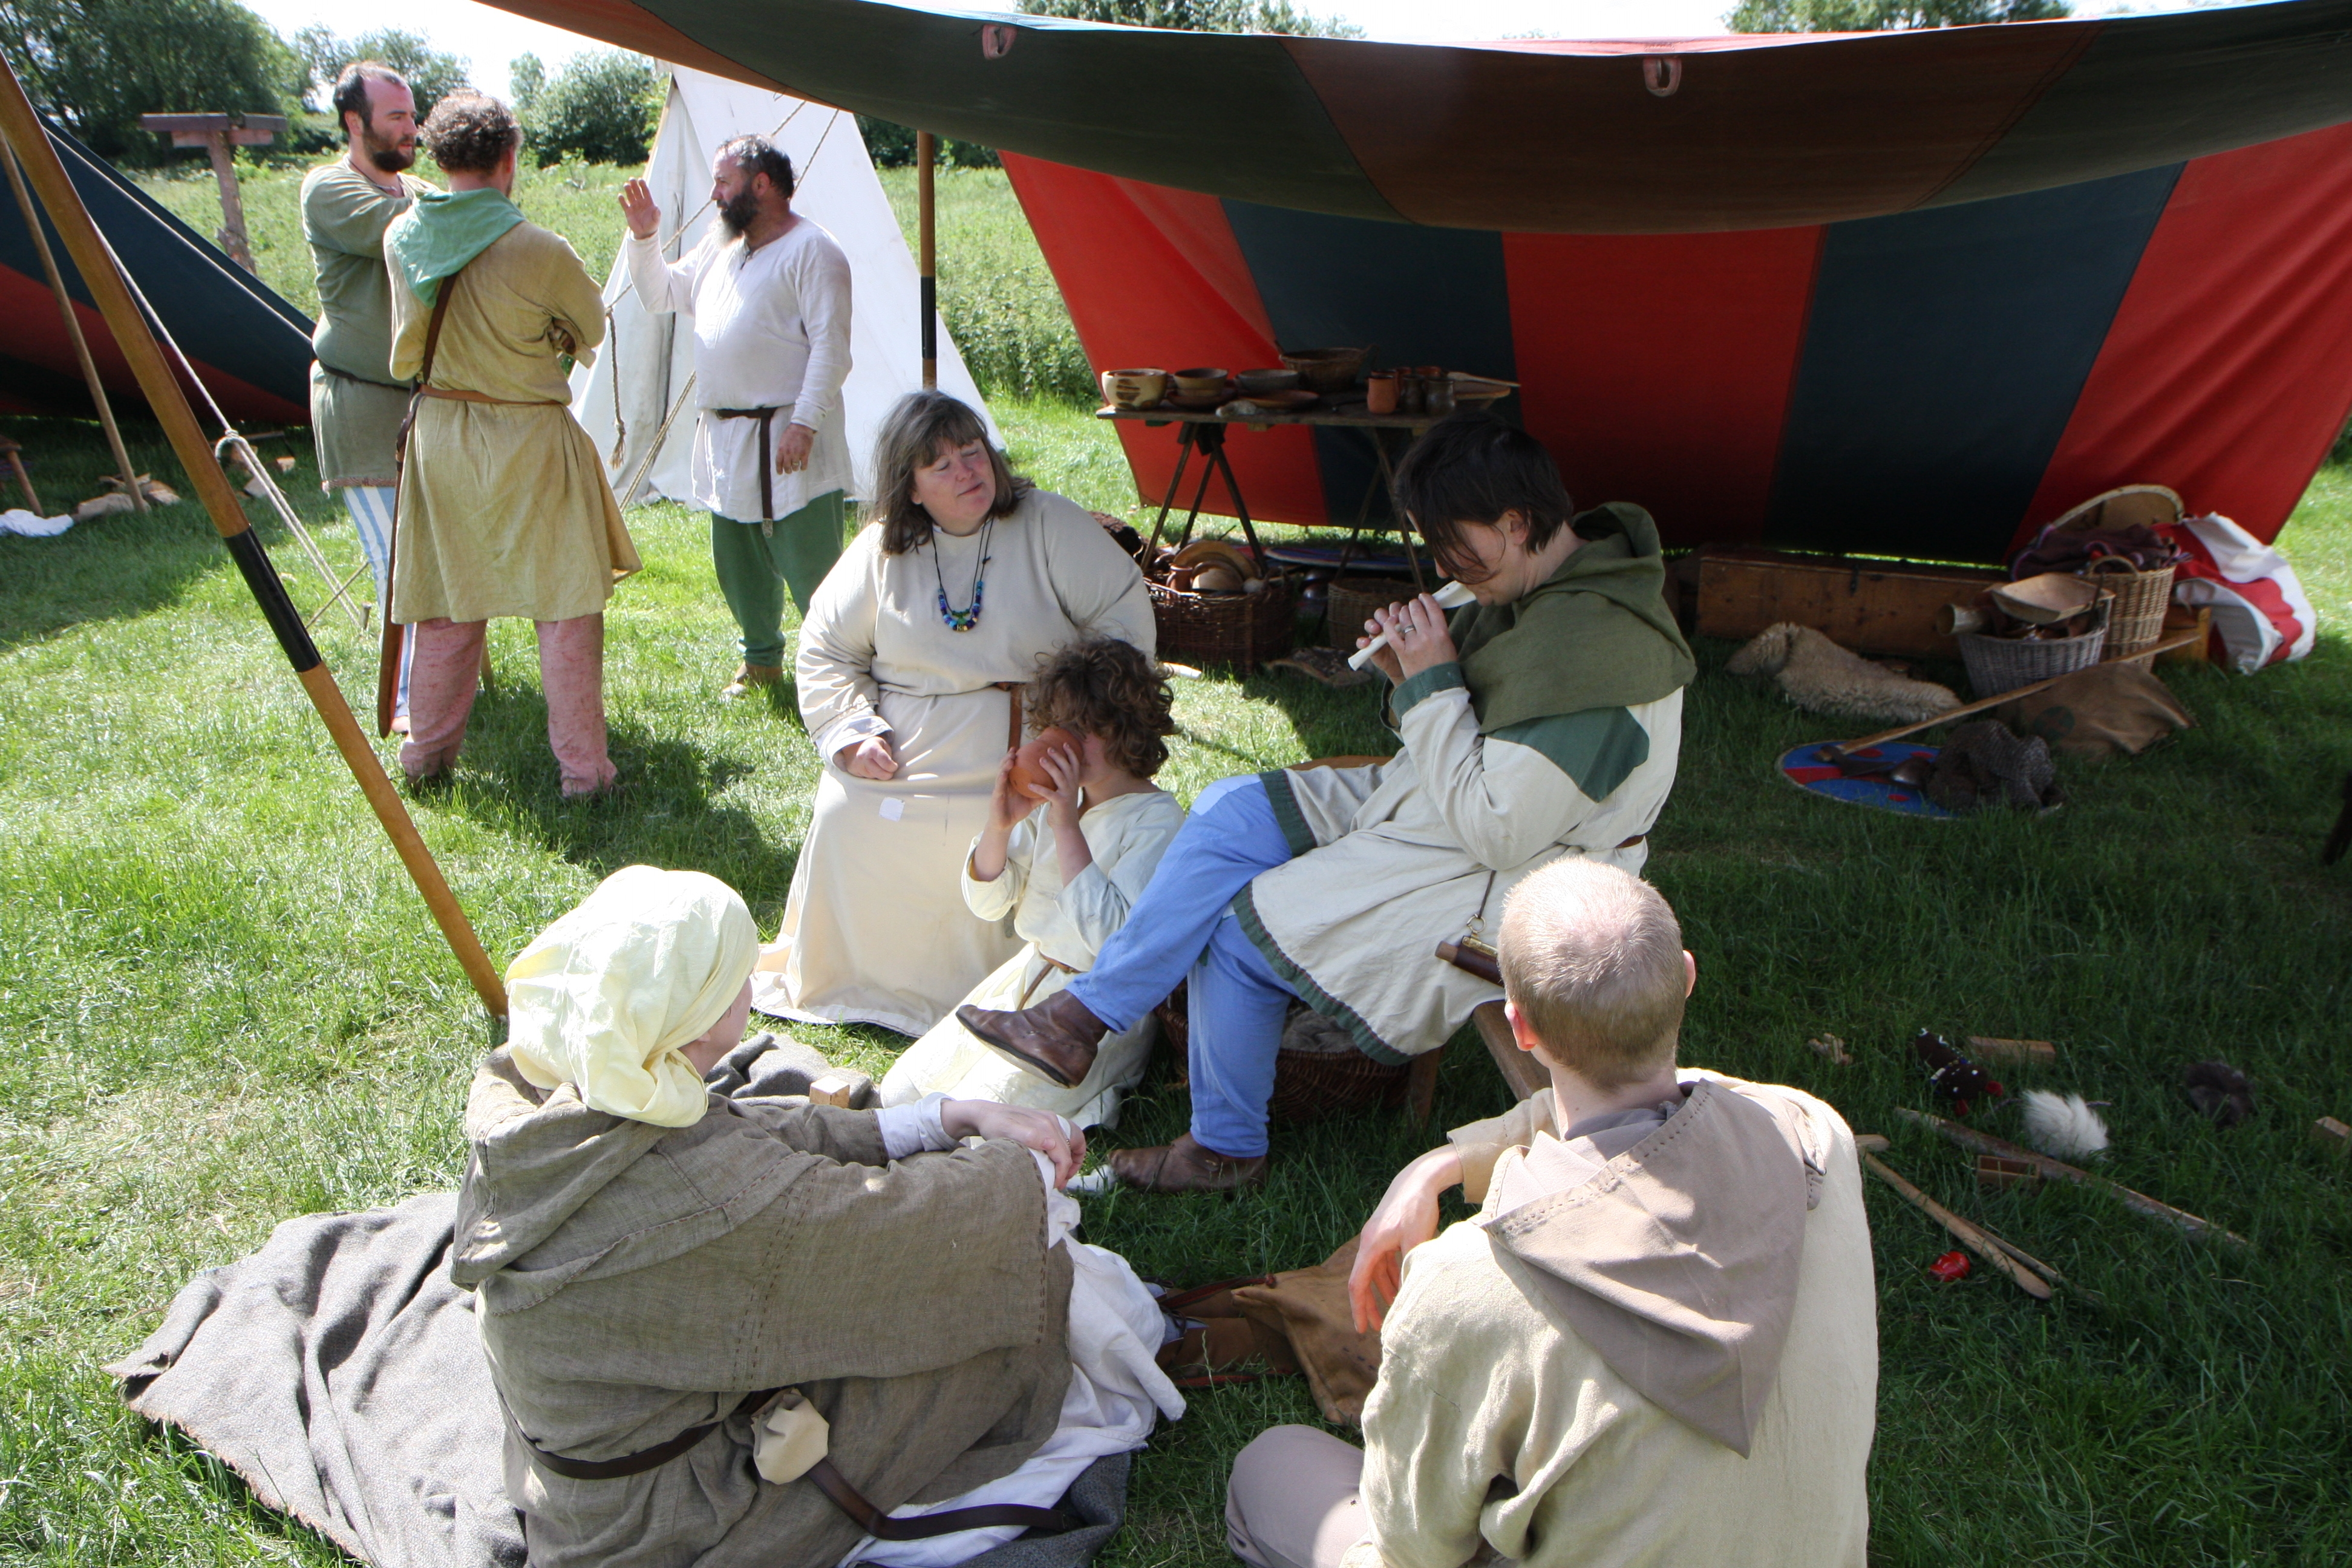 Vikings sitting under an awning; one plays a whistle